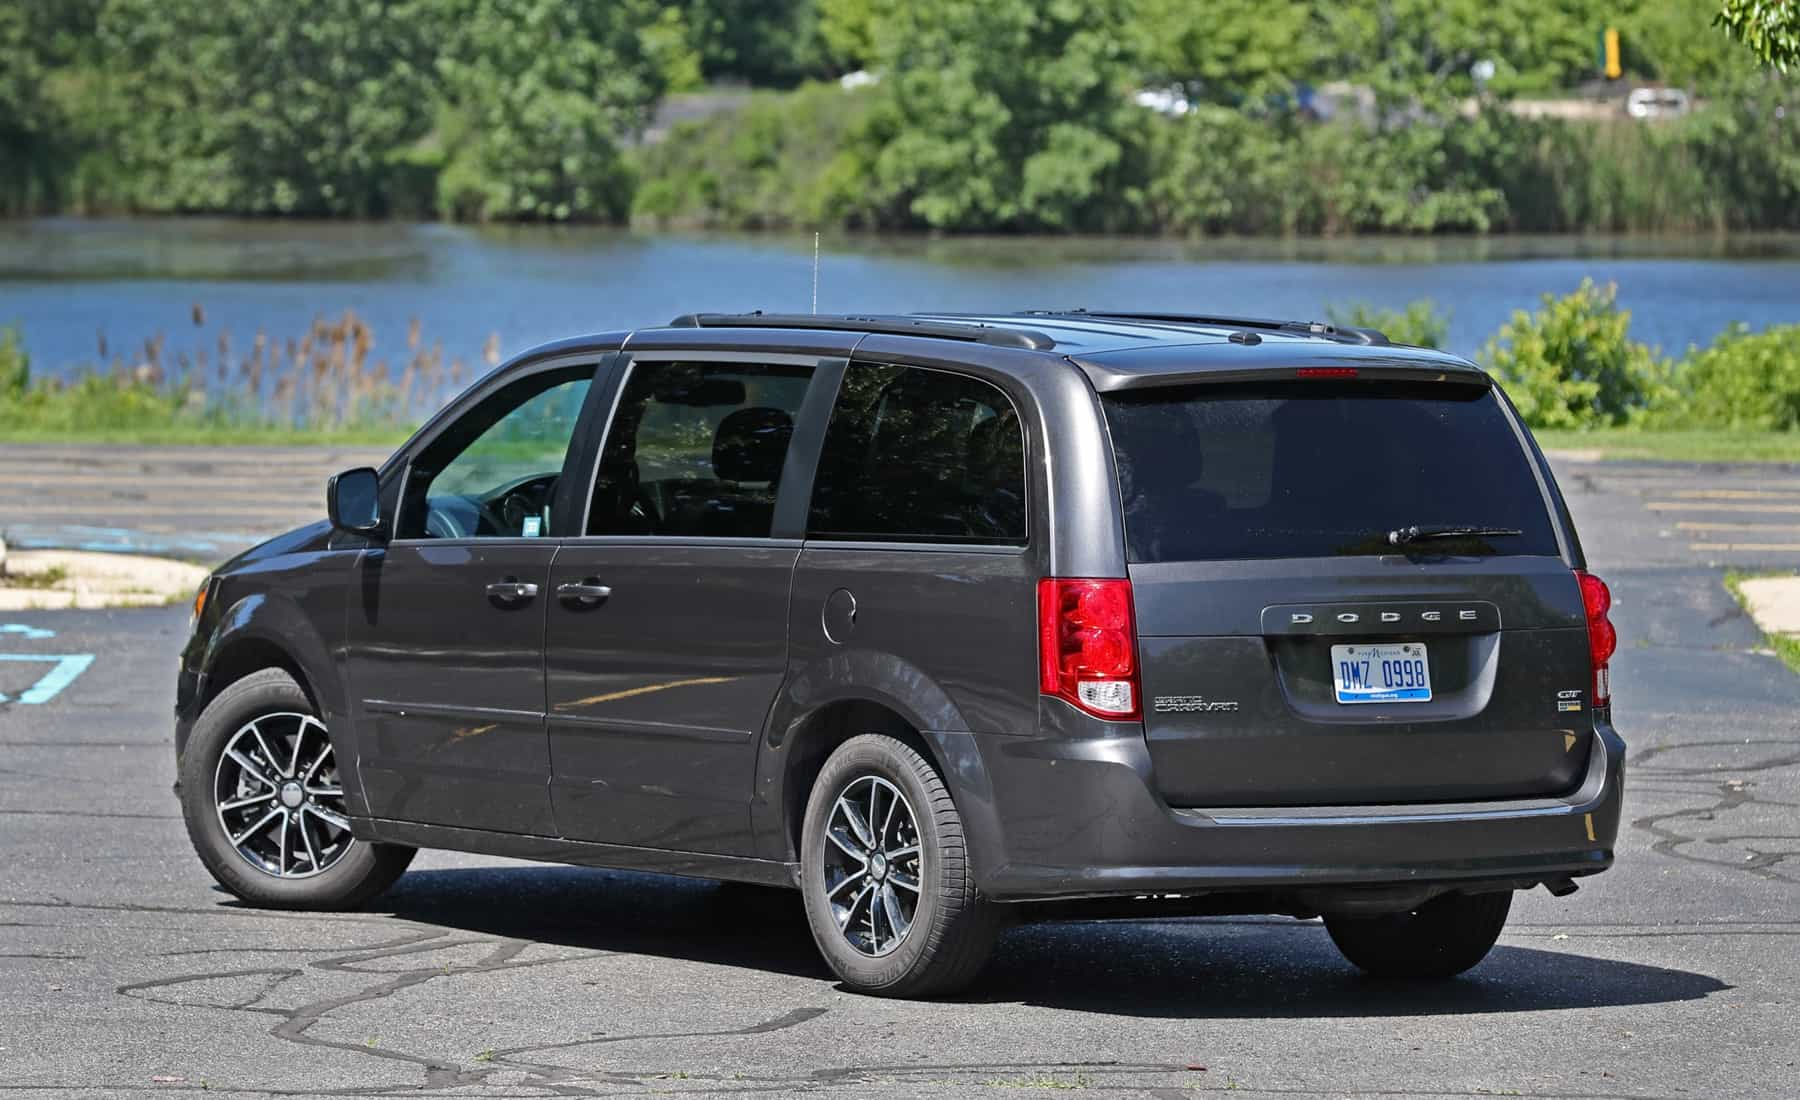 2017 Dodge Grand Caravan Exterior Rear And Side (Photo 7 of 47)